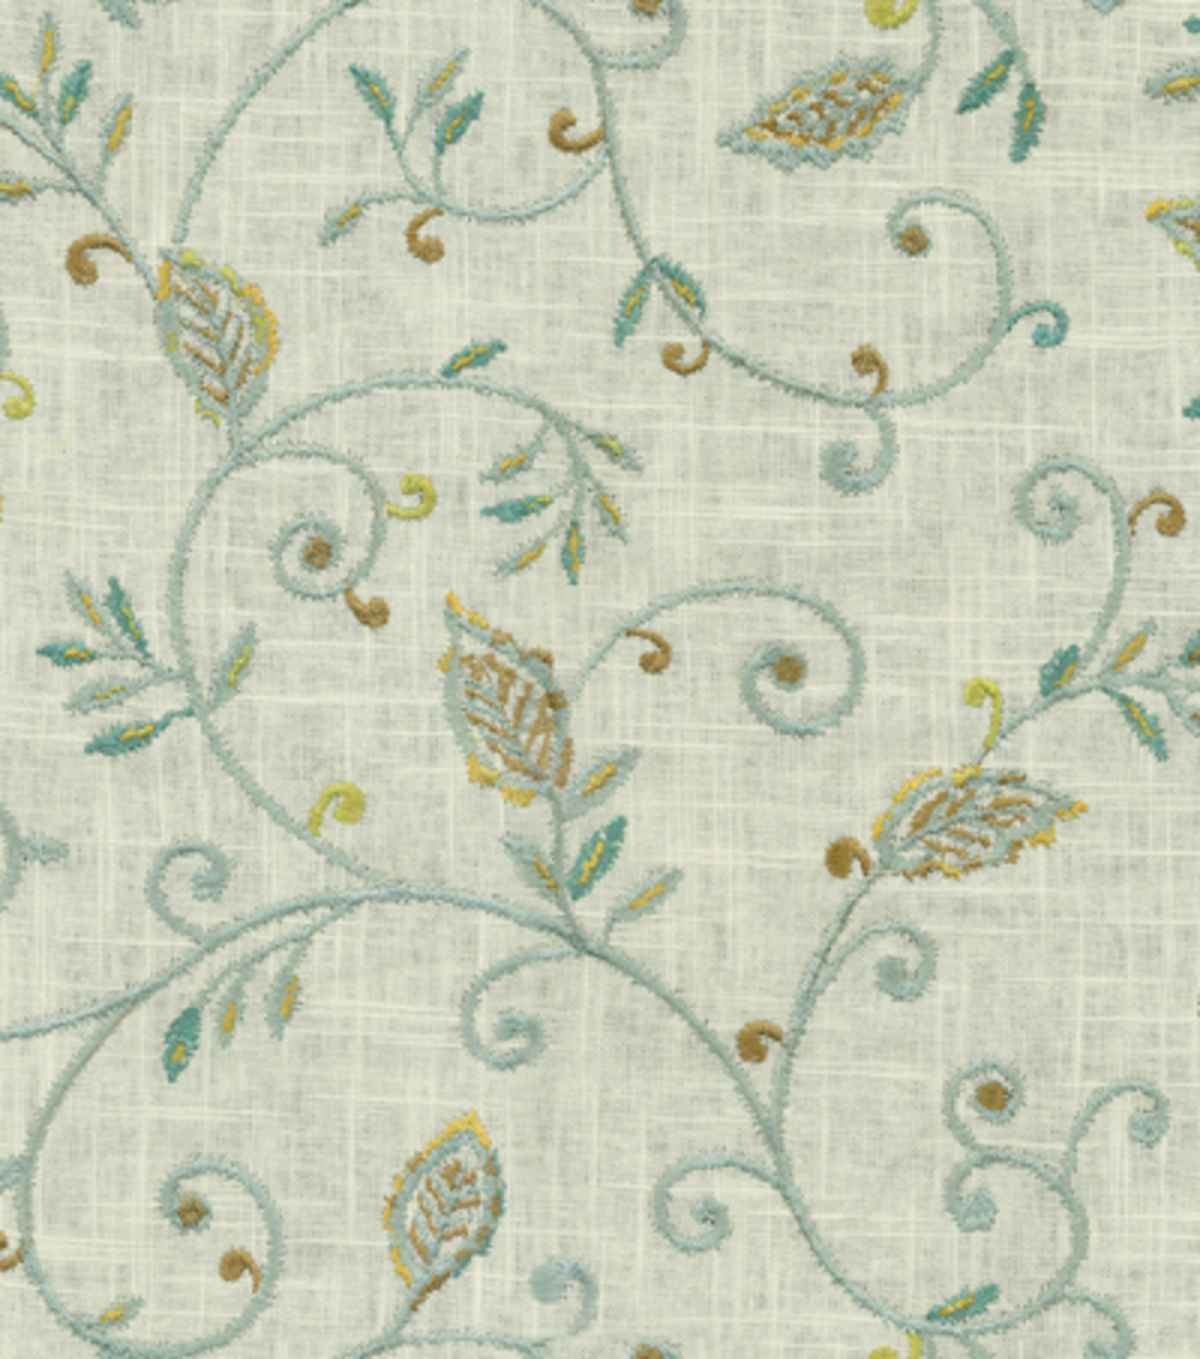 Home Decor 8\u0022x8\u0022 Fabric Swatch-Dena Kalia Embr Green Tea